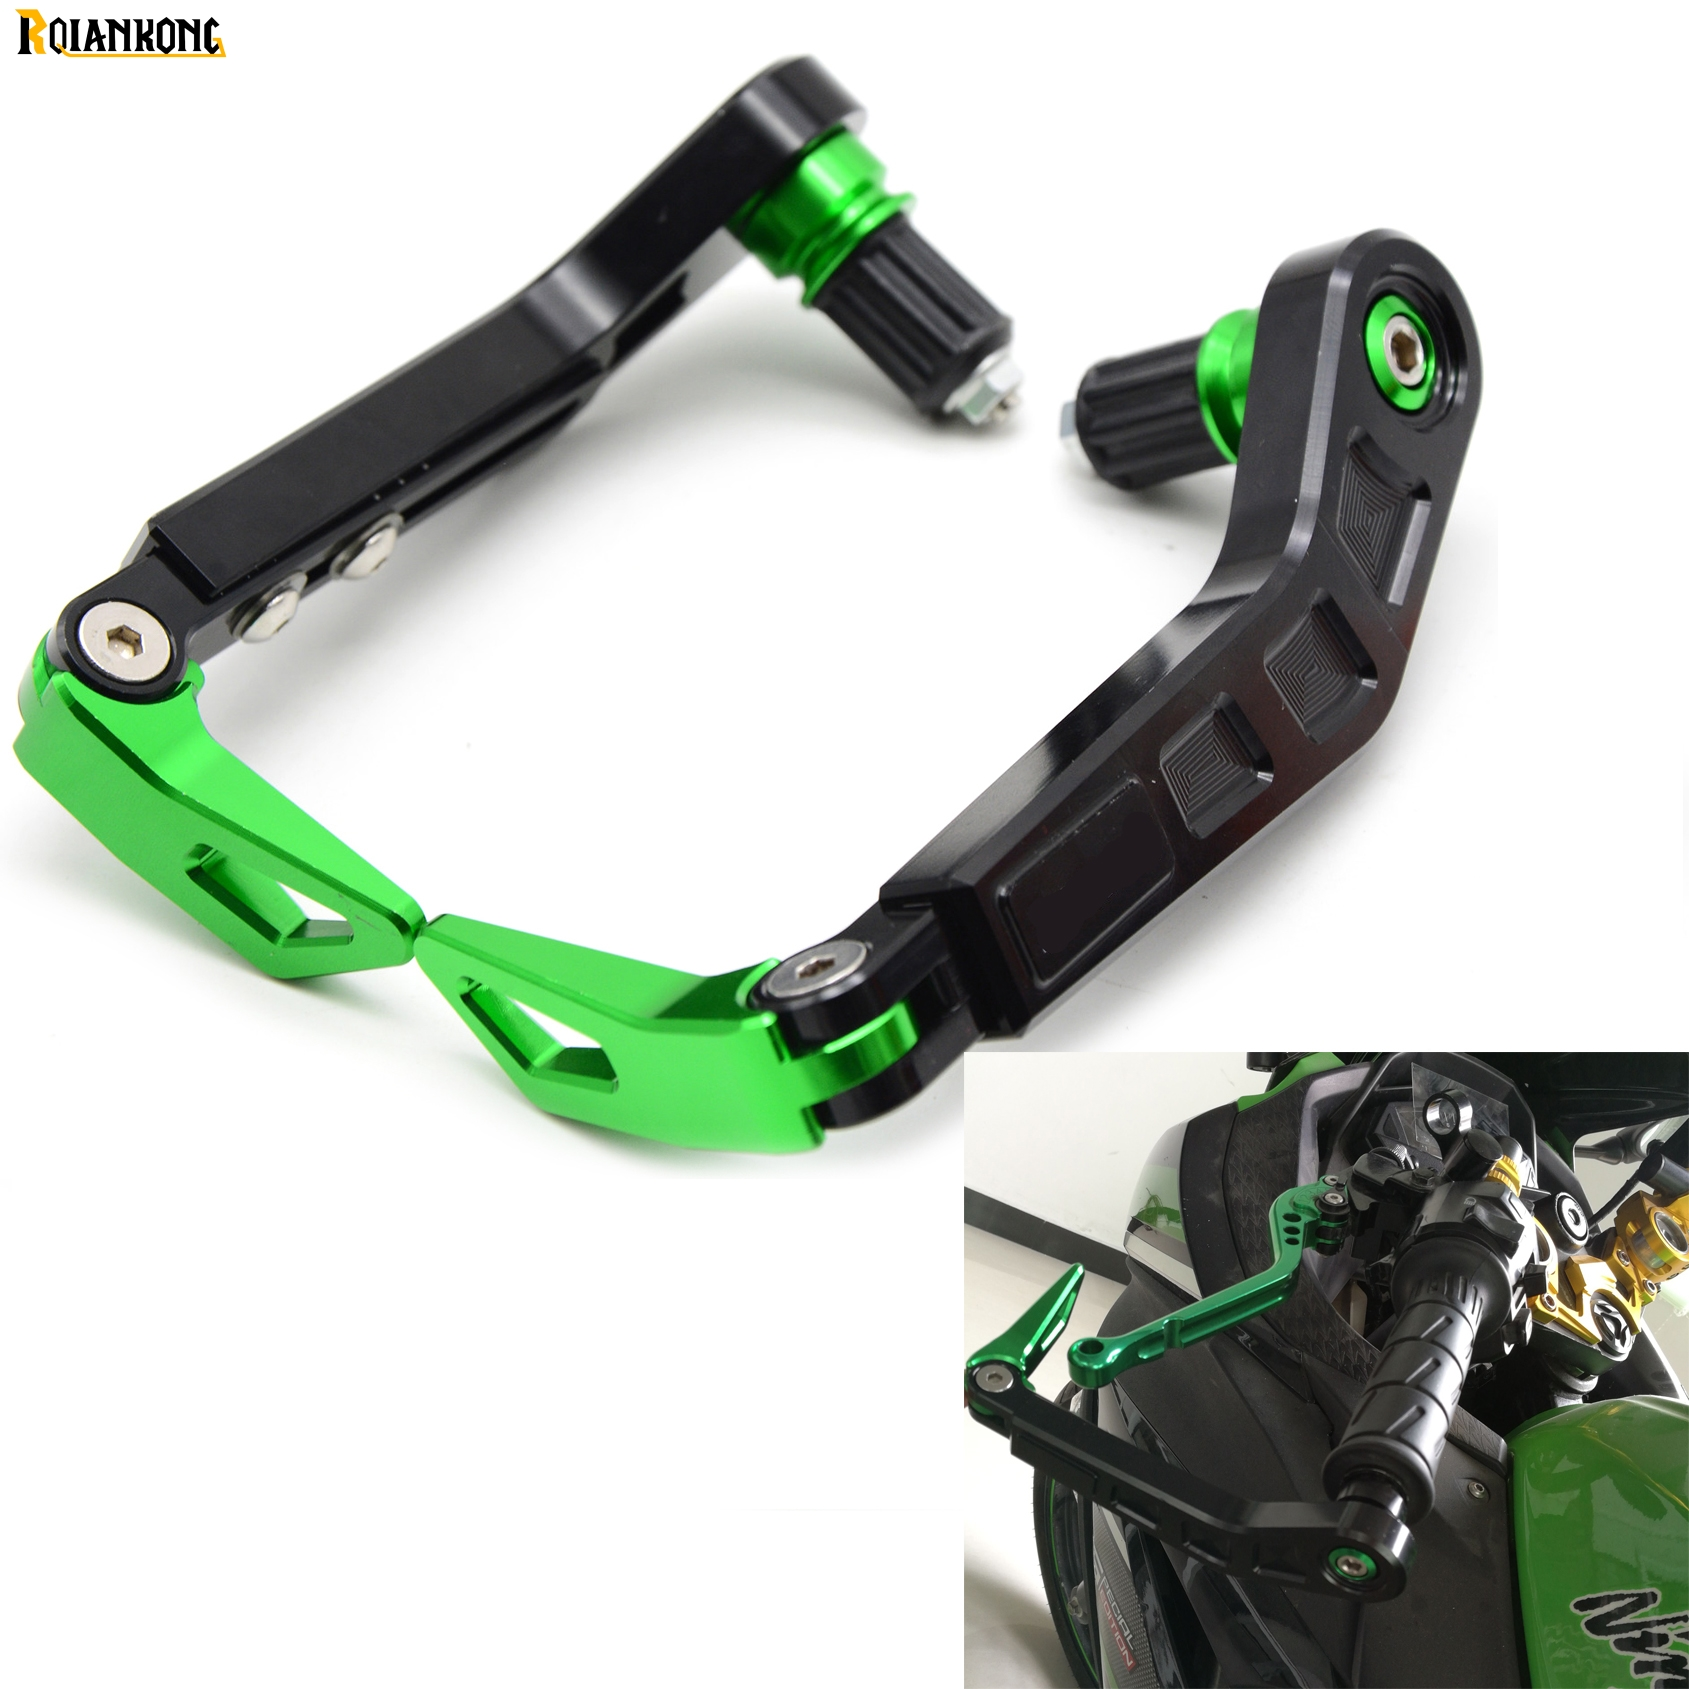 Universal 7/822mm Motorcycle Handlebar Brake Clutch Lever Protect Guard for Kawasaki  Z750 Z750R Z750S R S Z800 /E version for 22mm 7 8 handlebar motorcycle dirt bike universal stunt clutch lever assembly cnc aluminum